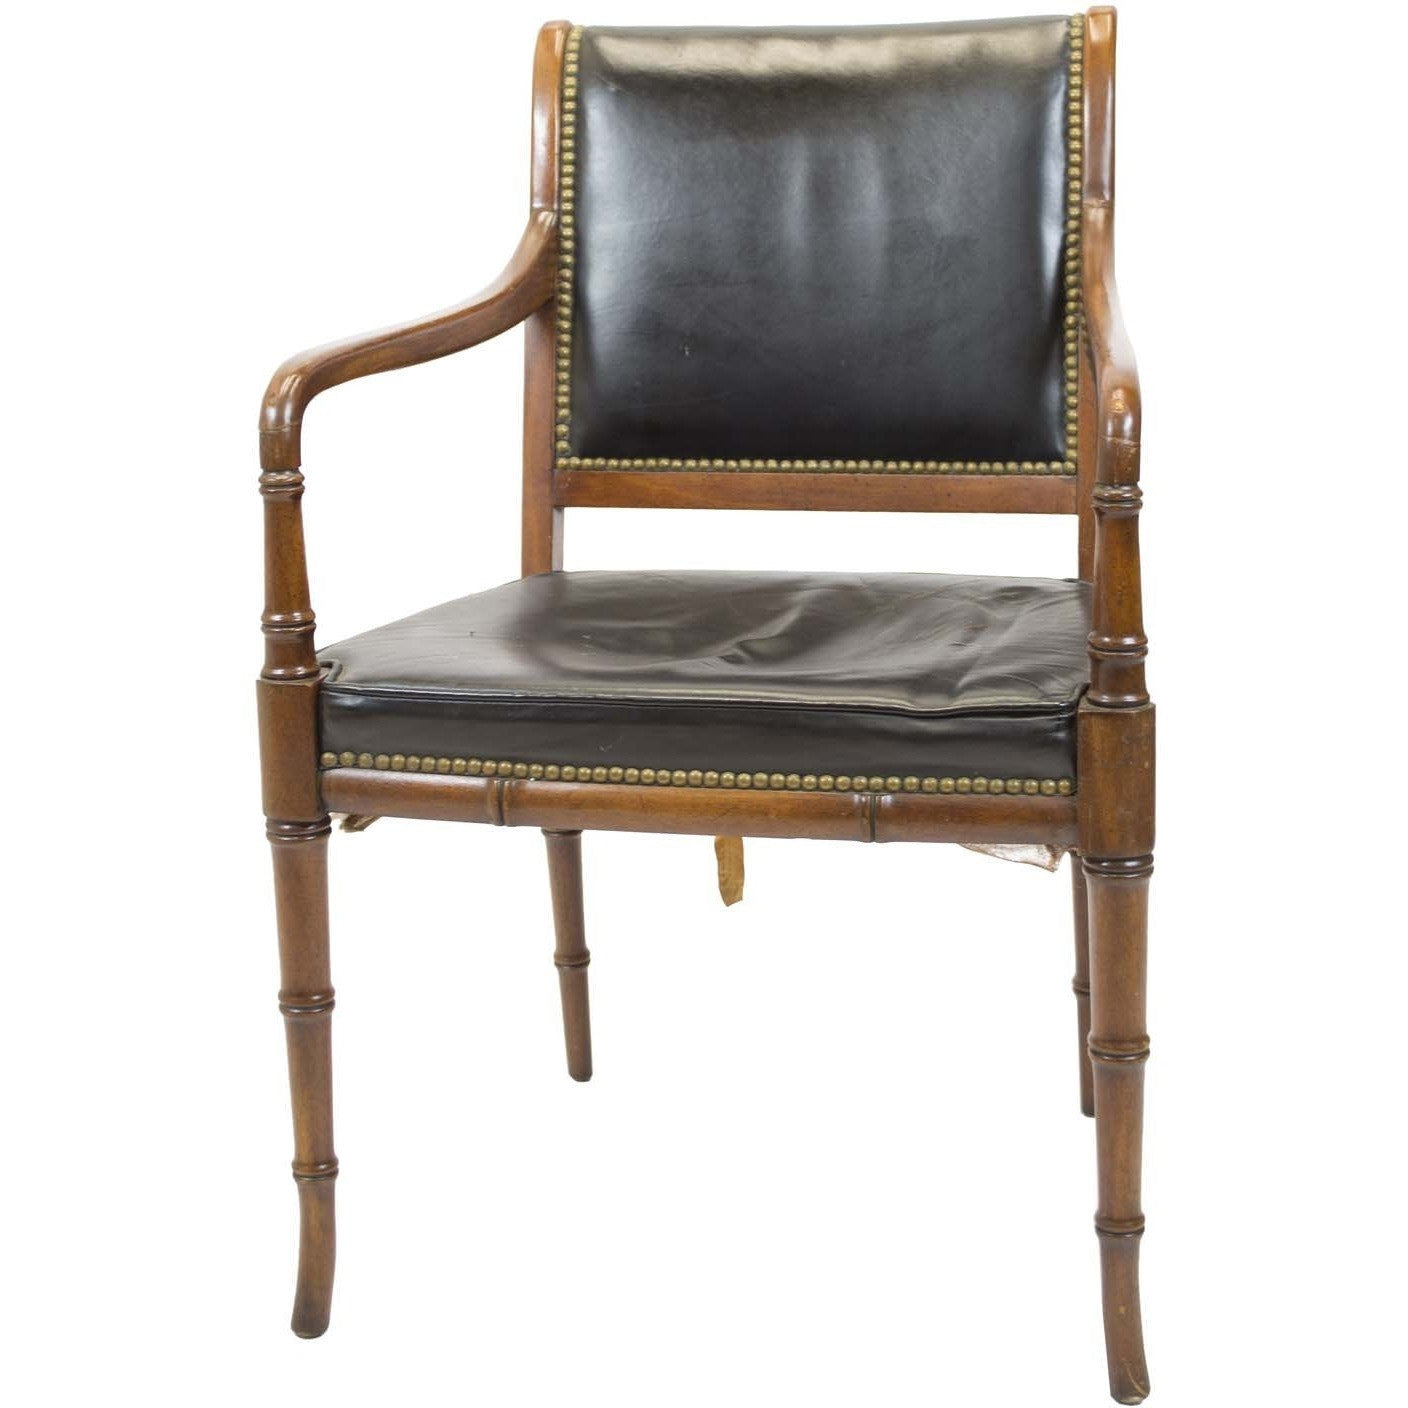 Hollywood Regency Arm Chair - Avery, Teach and Co.